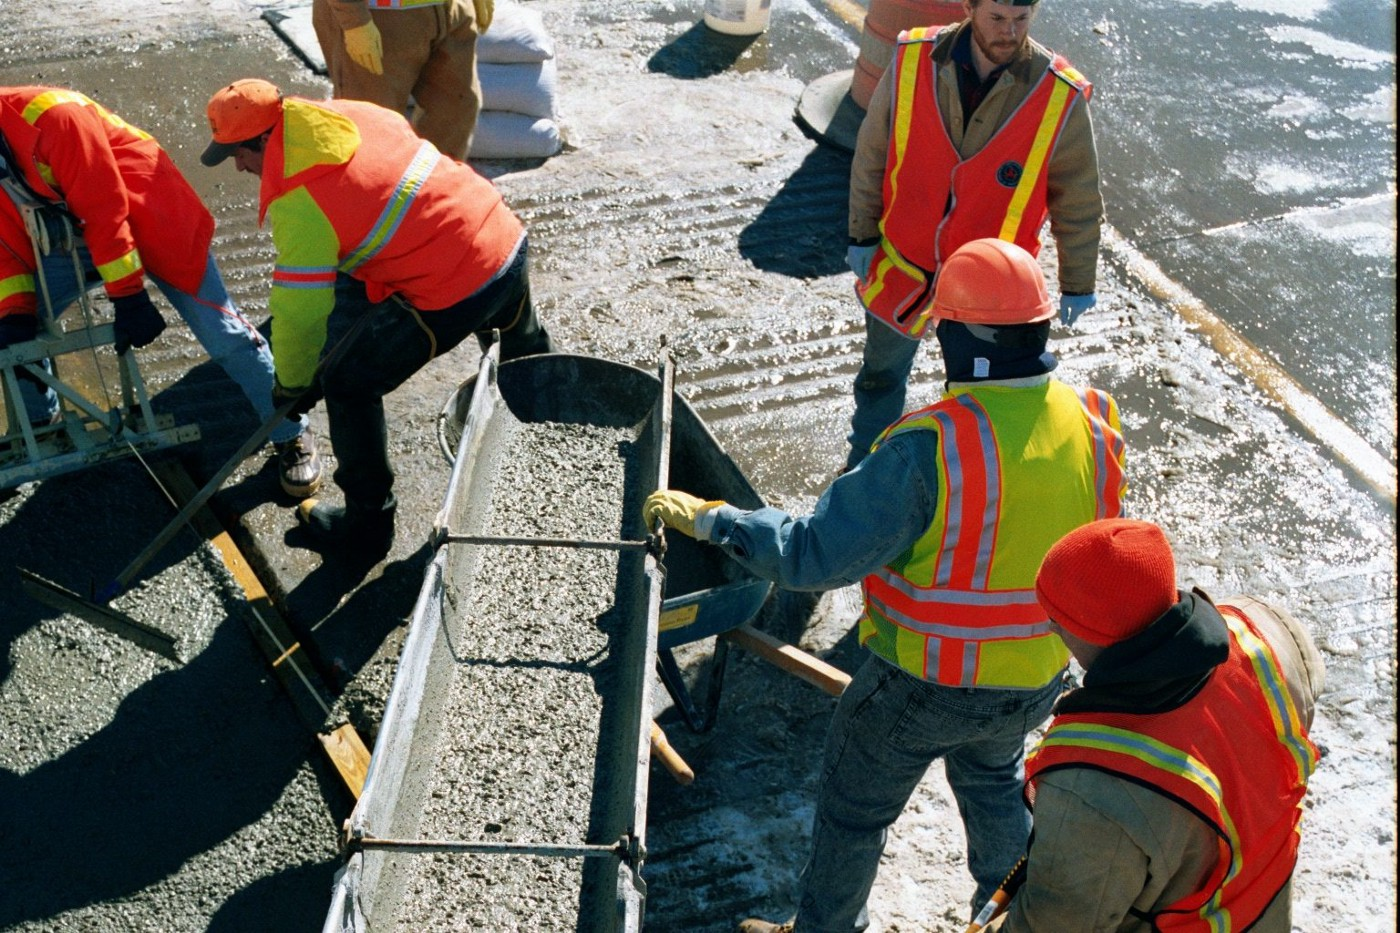 Several construction workers in hard hats and safety vests are pouring concrete at a worksite.